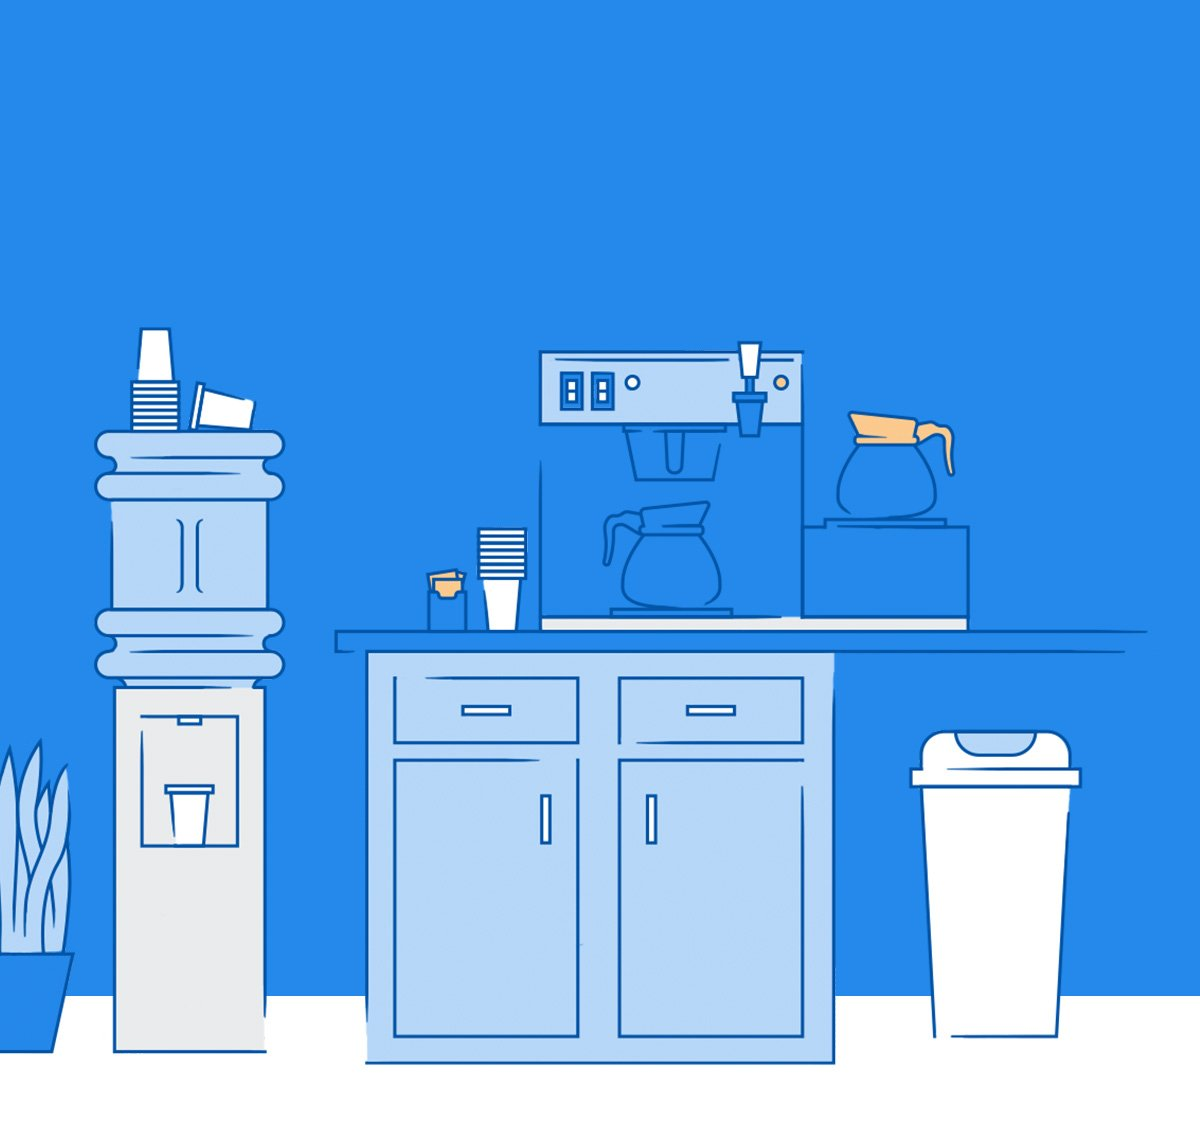 heyday coffee station illustration